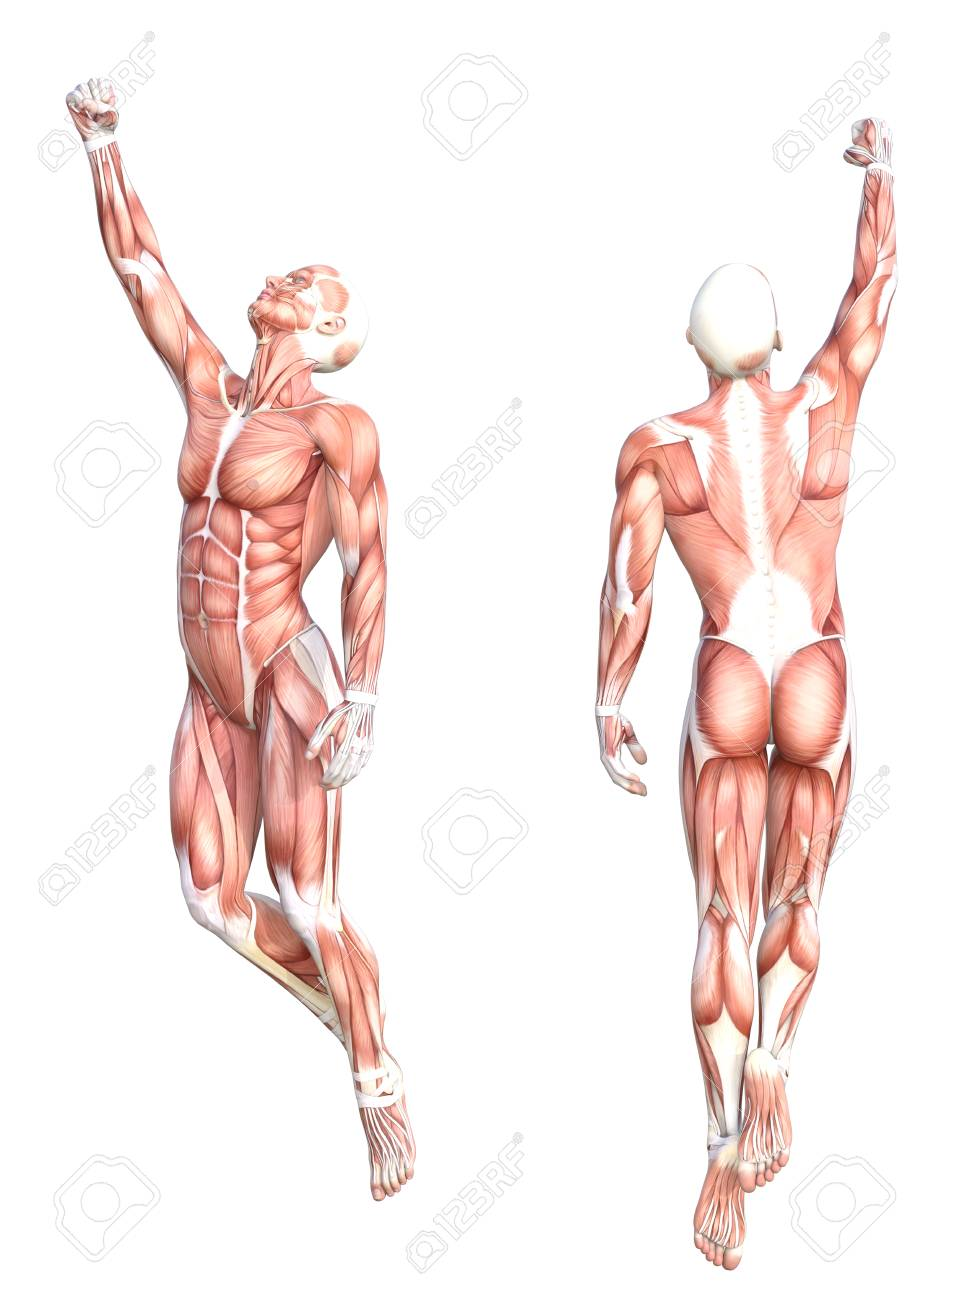 Conceptual anatomy healthy skinless human body muscle system set. Athletic young adult man posing for education, fitness sport, medicine isolated on white background. Biology science 3D illustration - 86906568